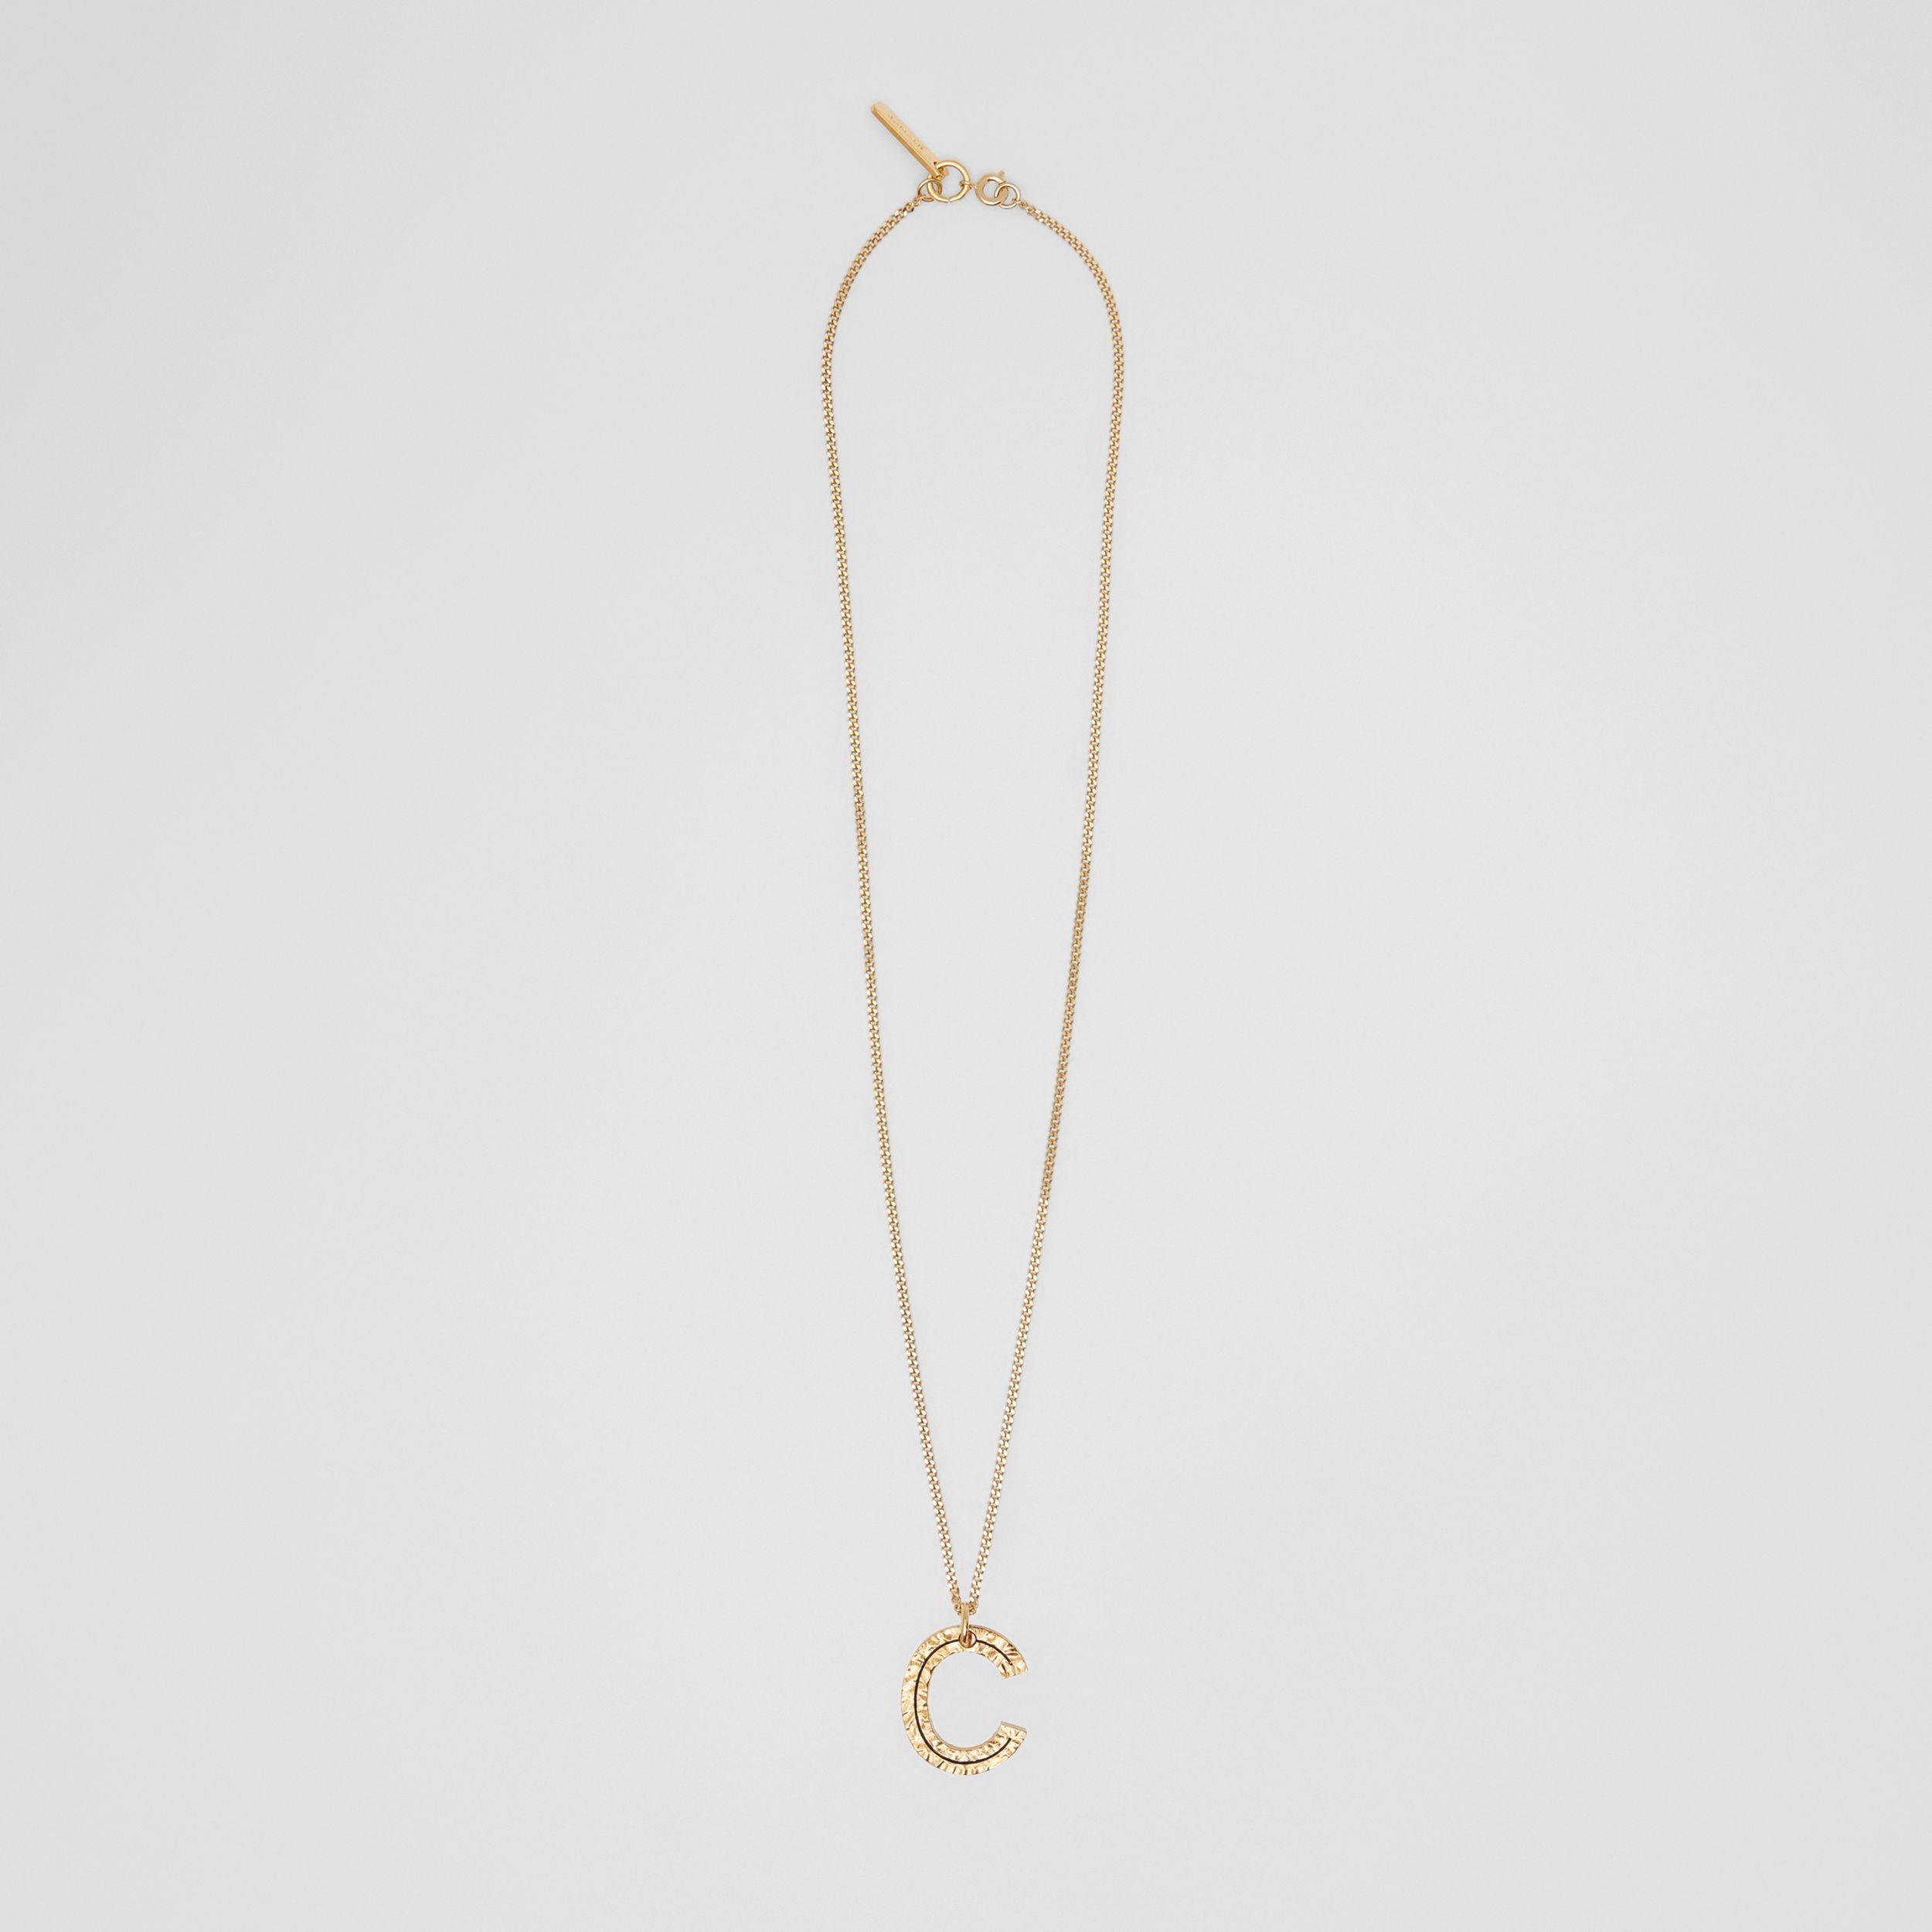 'C' Alphabet Charm Gold-plated Necklace in Light - Women | Burberry - 1